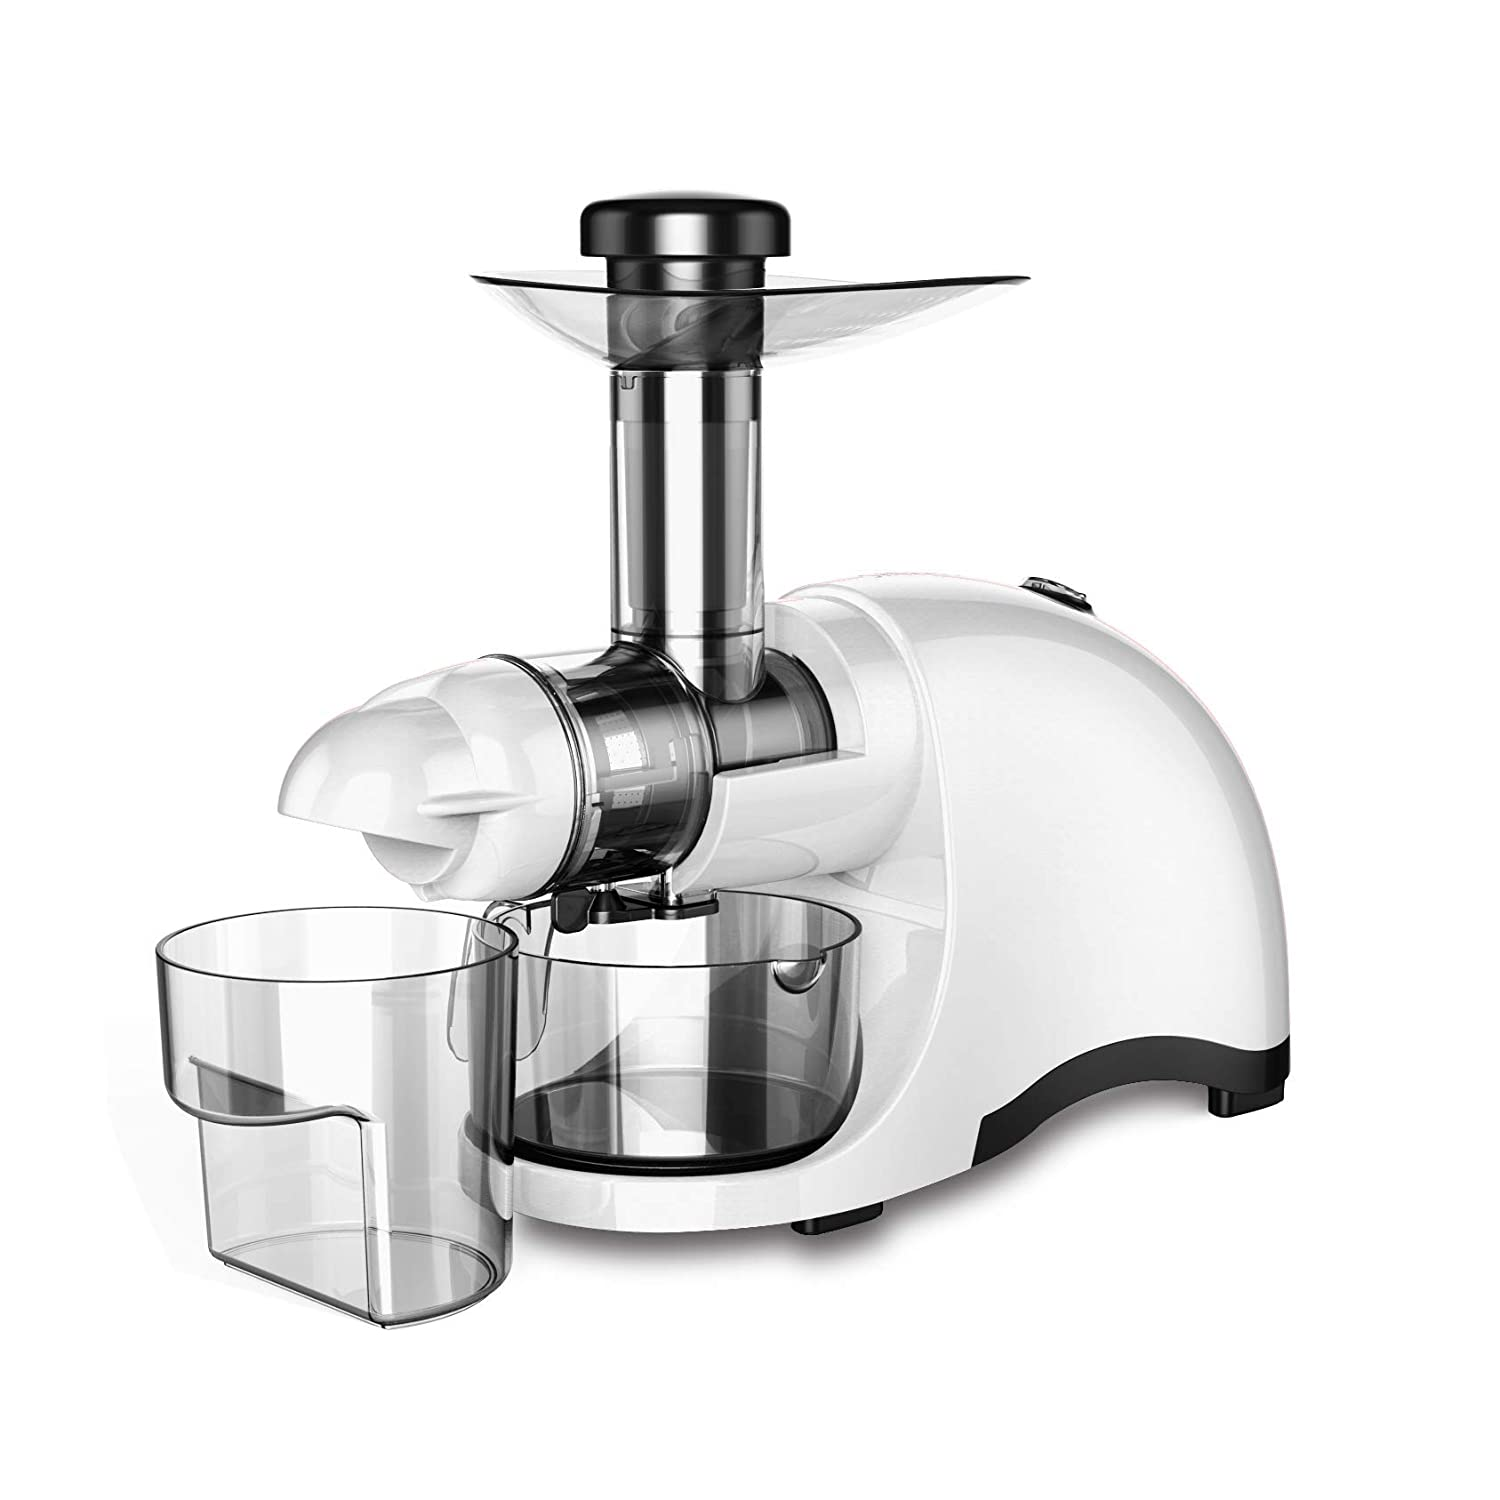 150-Watt Cold Press Professional Juicer Slow Speed Creates Continuous Fresh Healthy Fruit Vegetable /& Leafy Greens Juice at 60 RPM High Juice Yield Greenis F-9600 Horizontal Masticating Juicer White Tritan Material Ultra-Durable and BPA Free,